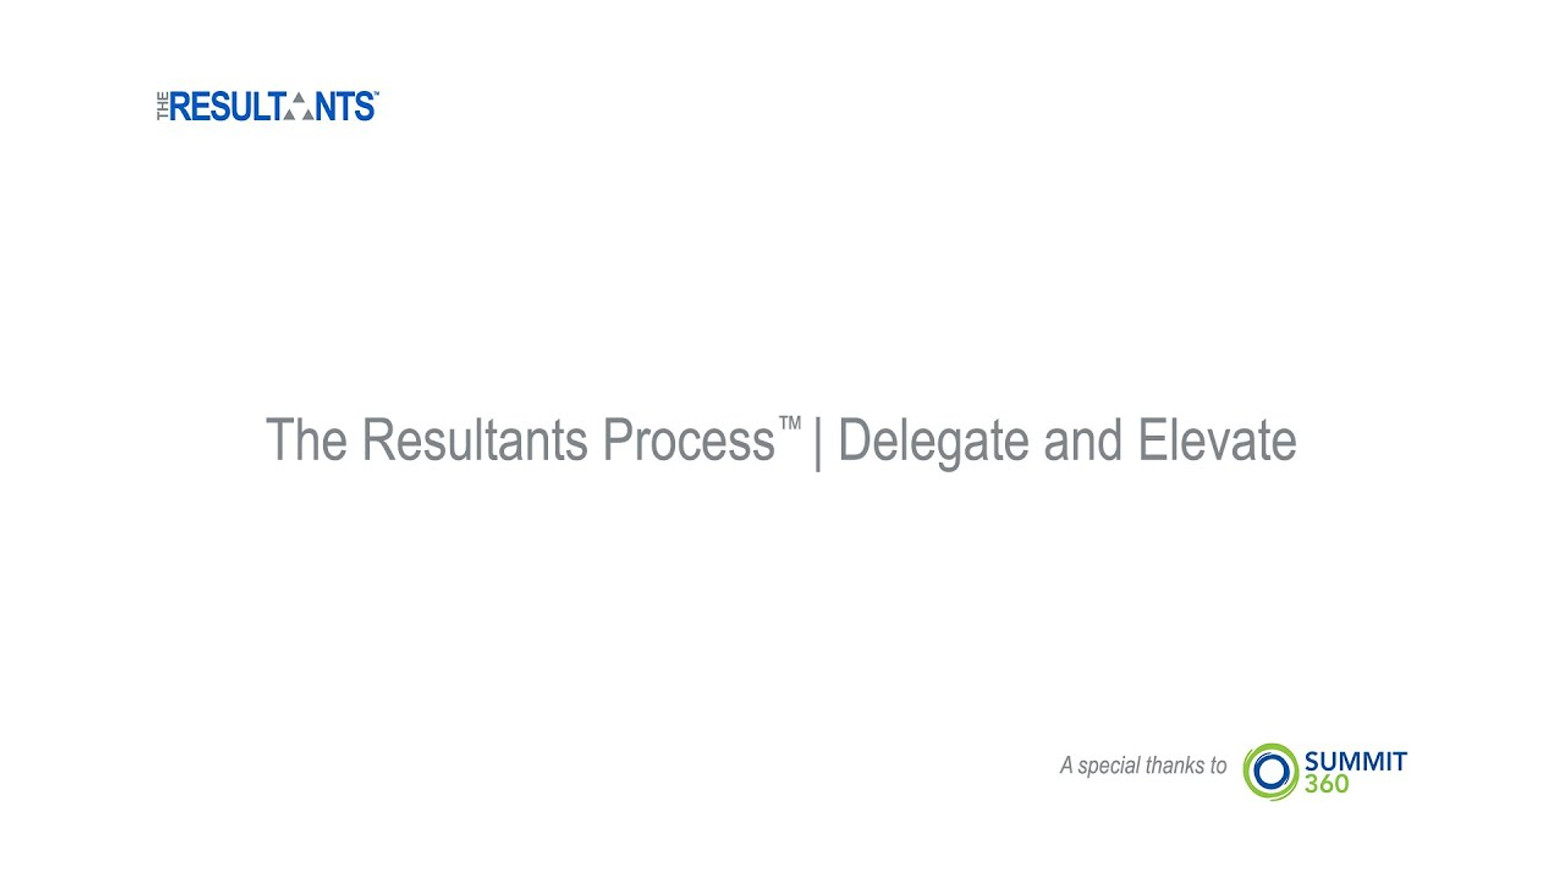 The Resultants Process™ | Delegate and Elevate